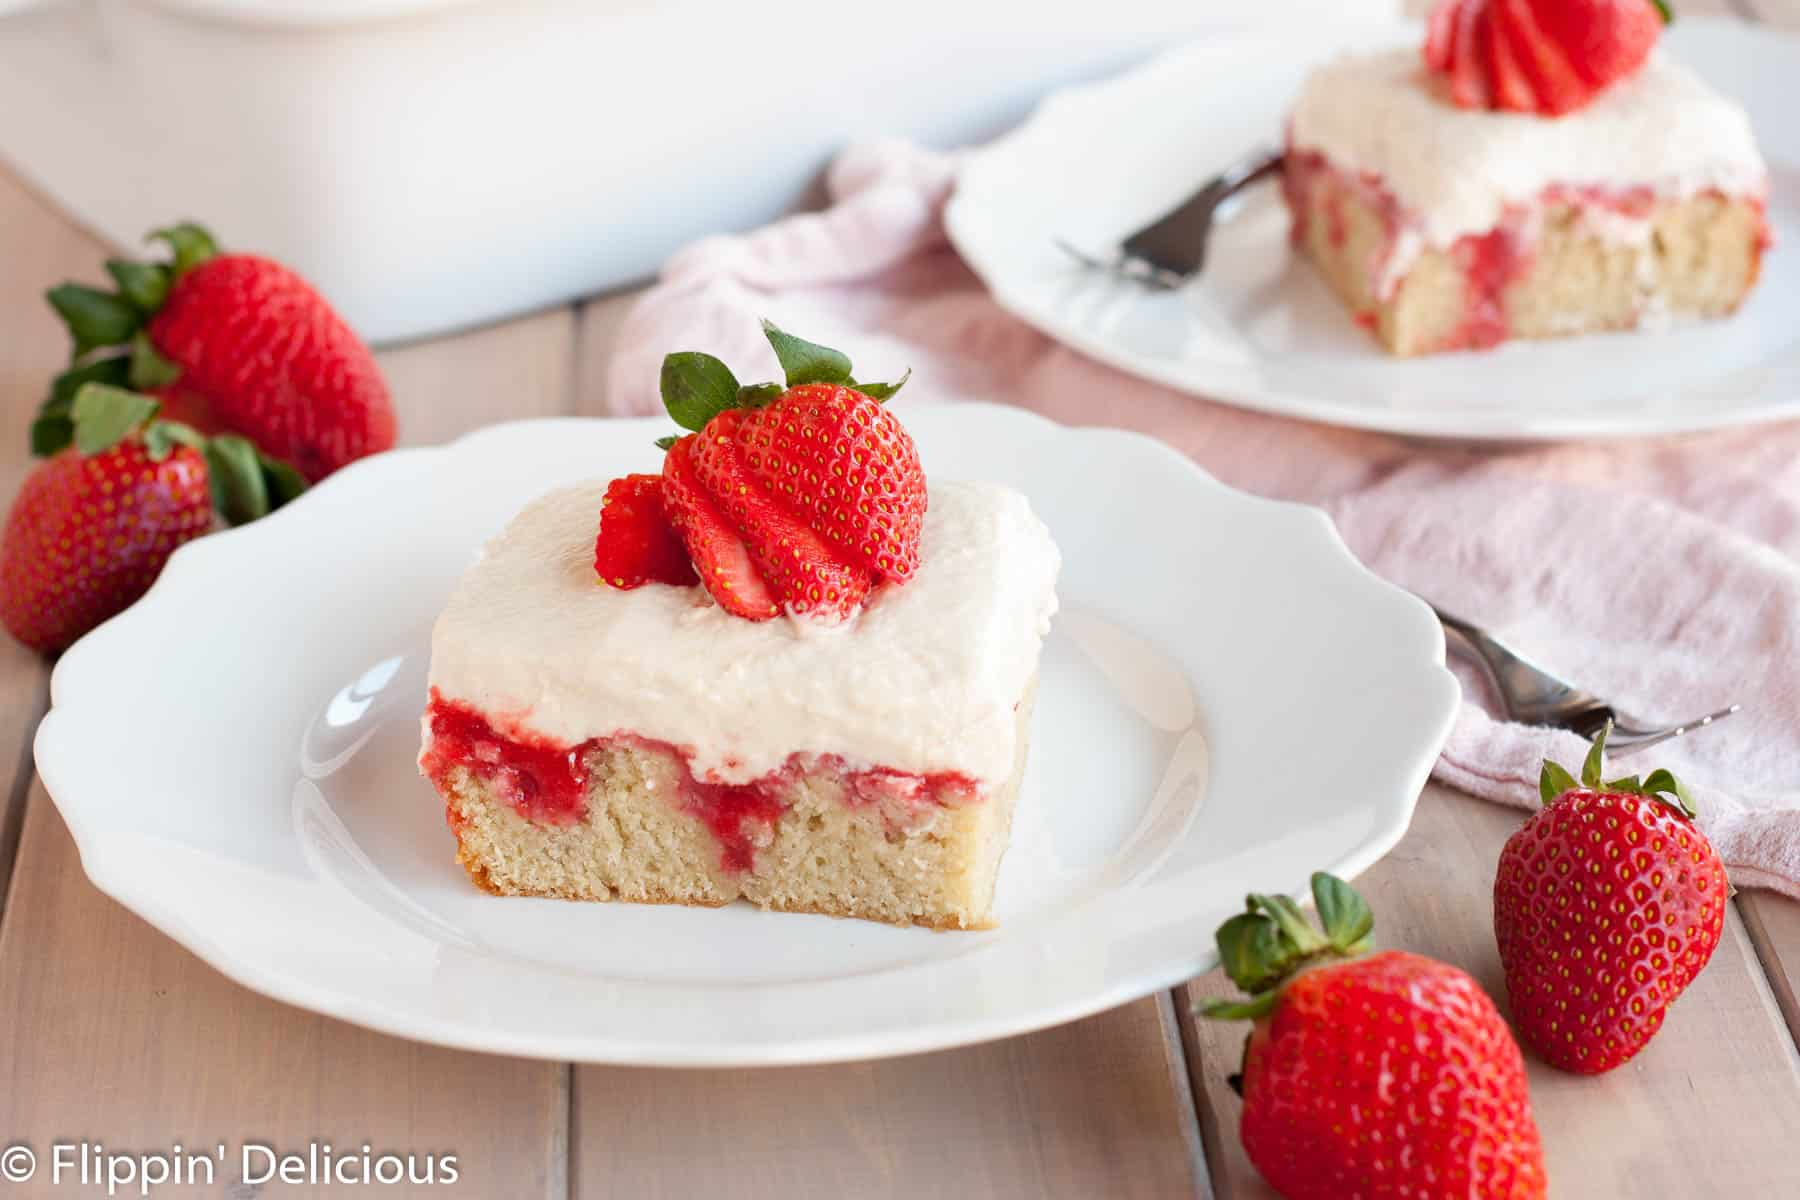 a slice of gluten free strawberry poke cake topped with a fresh strawberry on a white plate with scalloped edges on a light gray wooden table with fresh strawberries